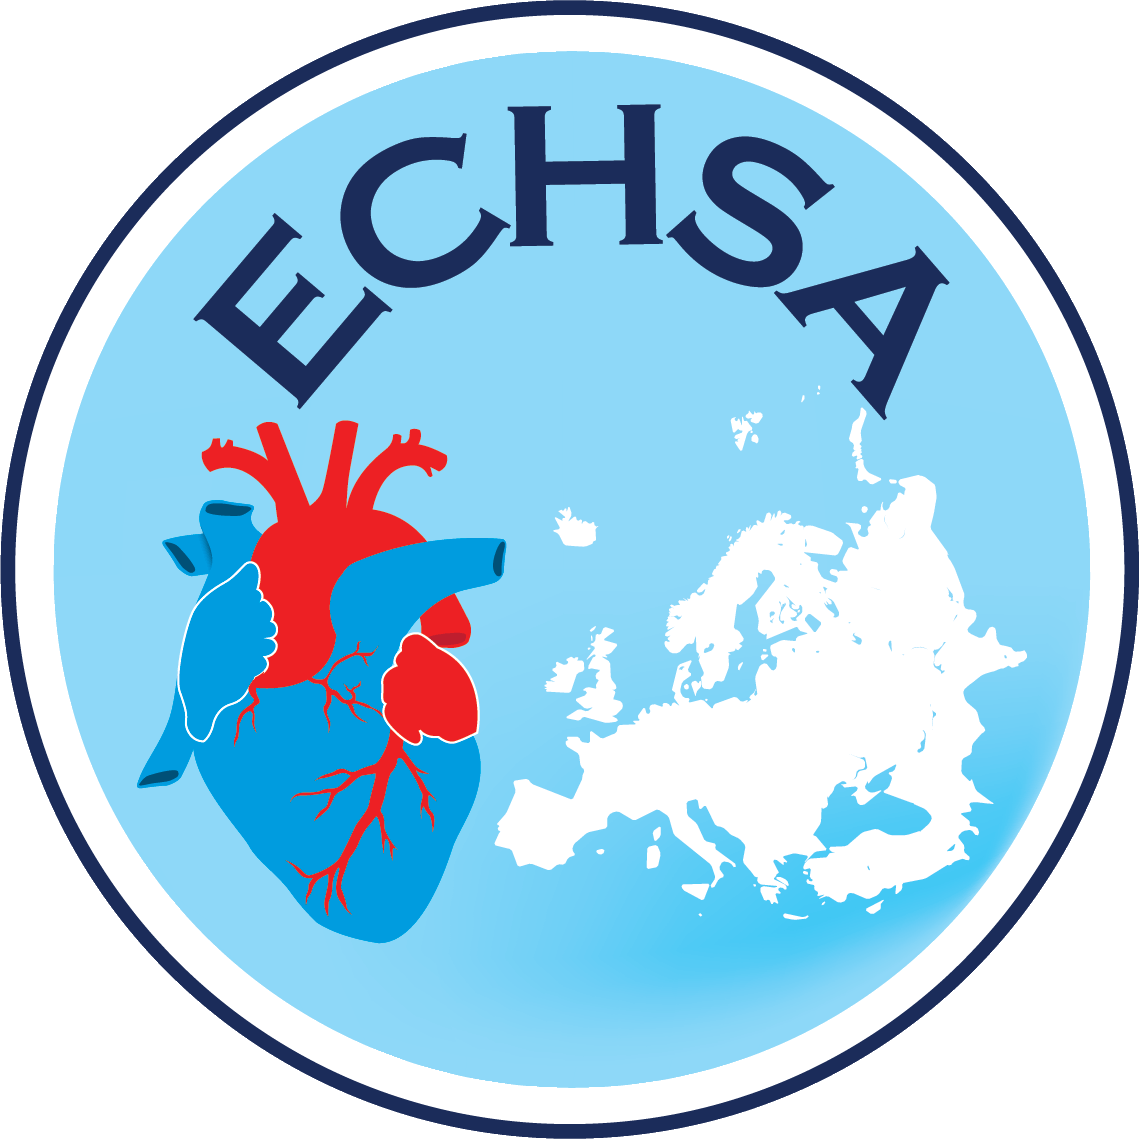 ECHSA Meeting 2019